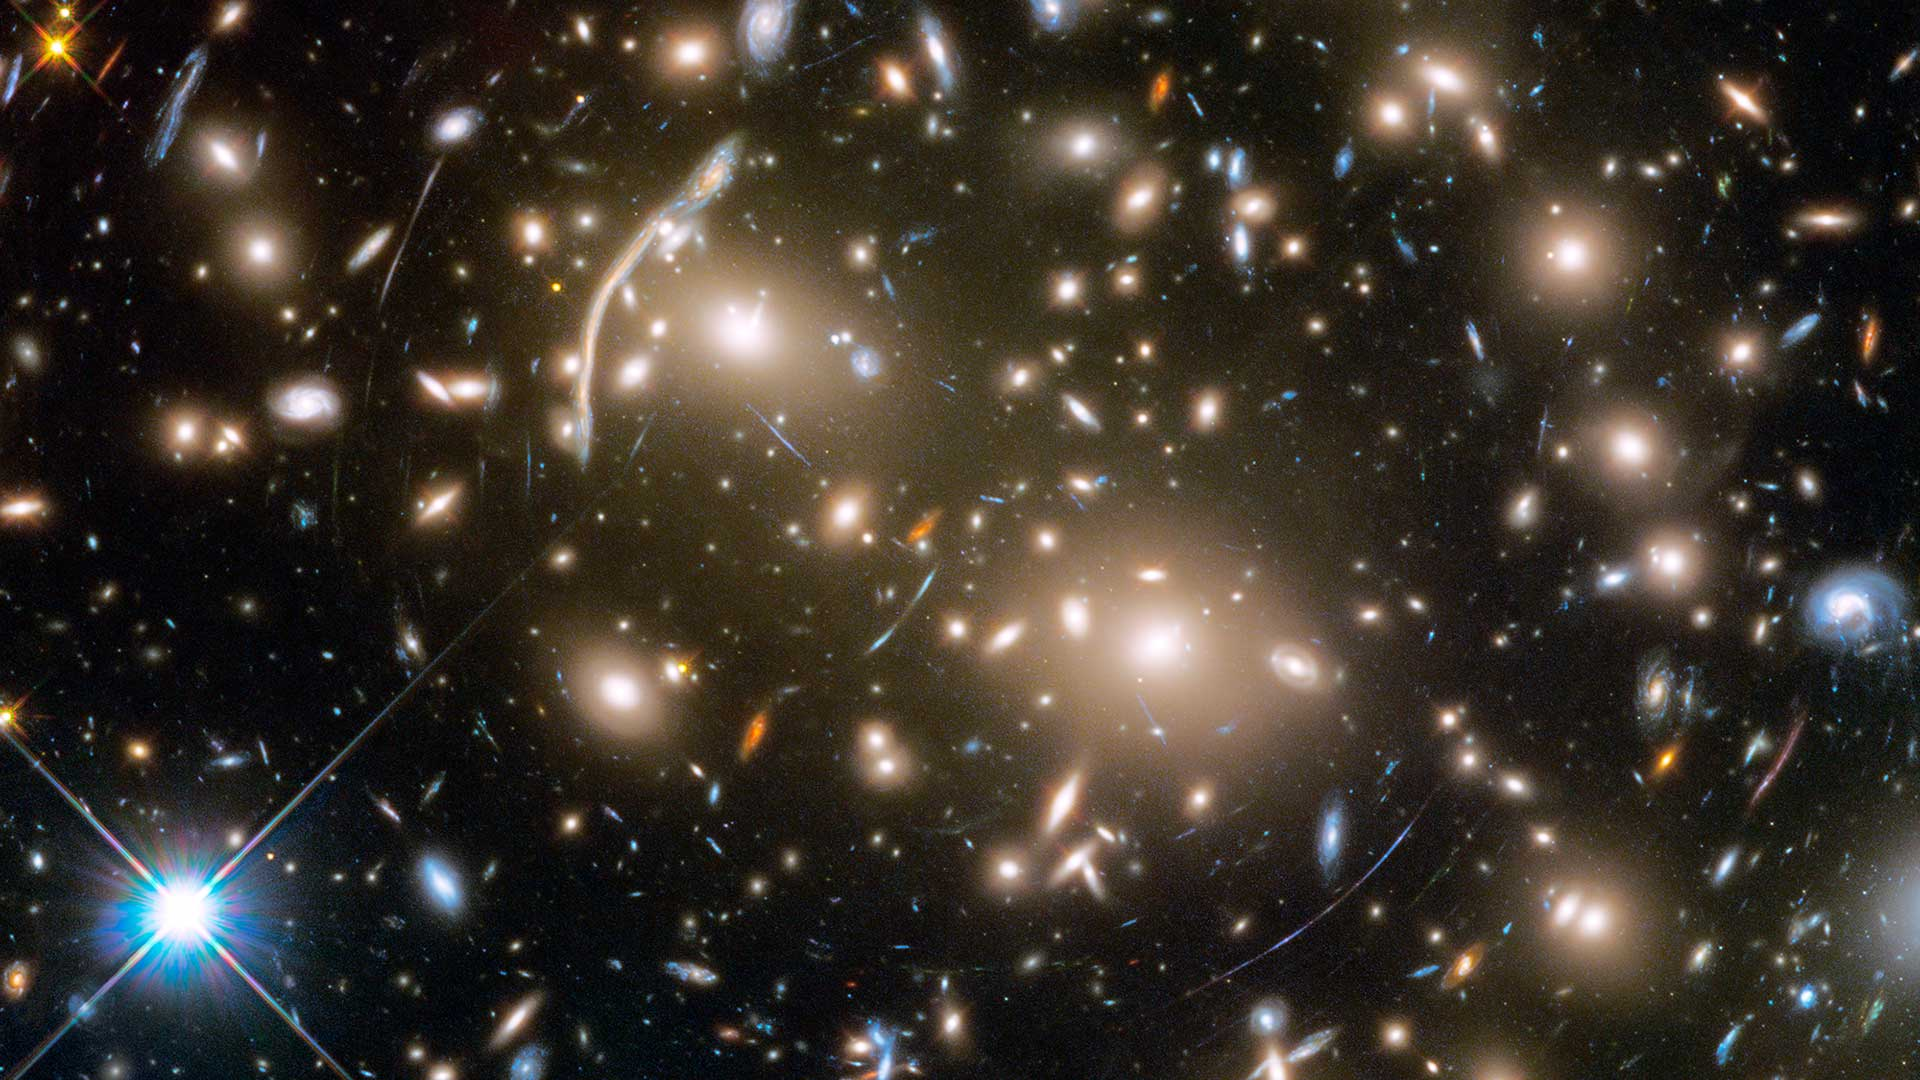 The Hubble Space Telescope took this image of Abell 370, a galaxy cluster 4 billion light-years from Earth. Several hundred galaxies are tied together by gravity. The arcs of blue light are distorted images of galaxies far behind the cluster.